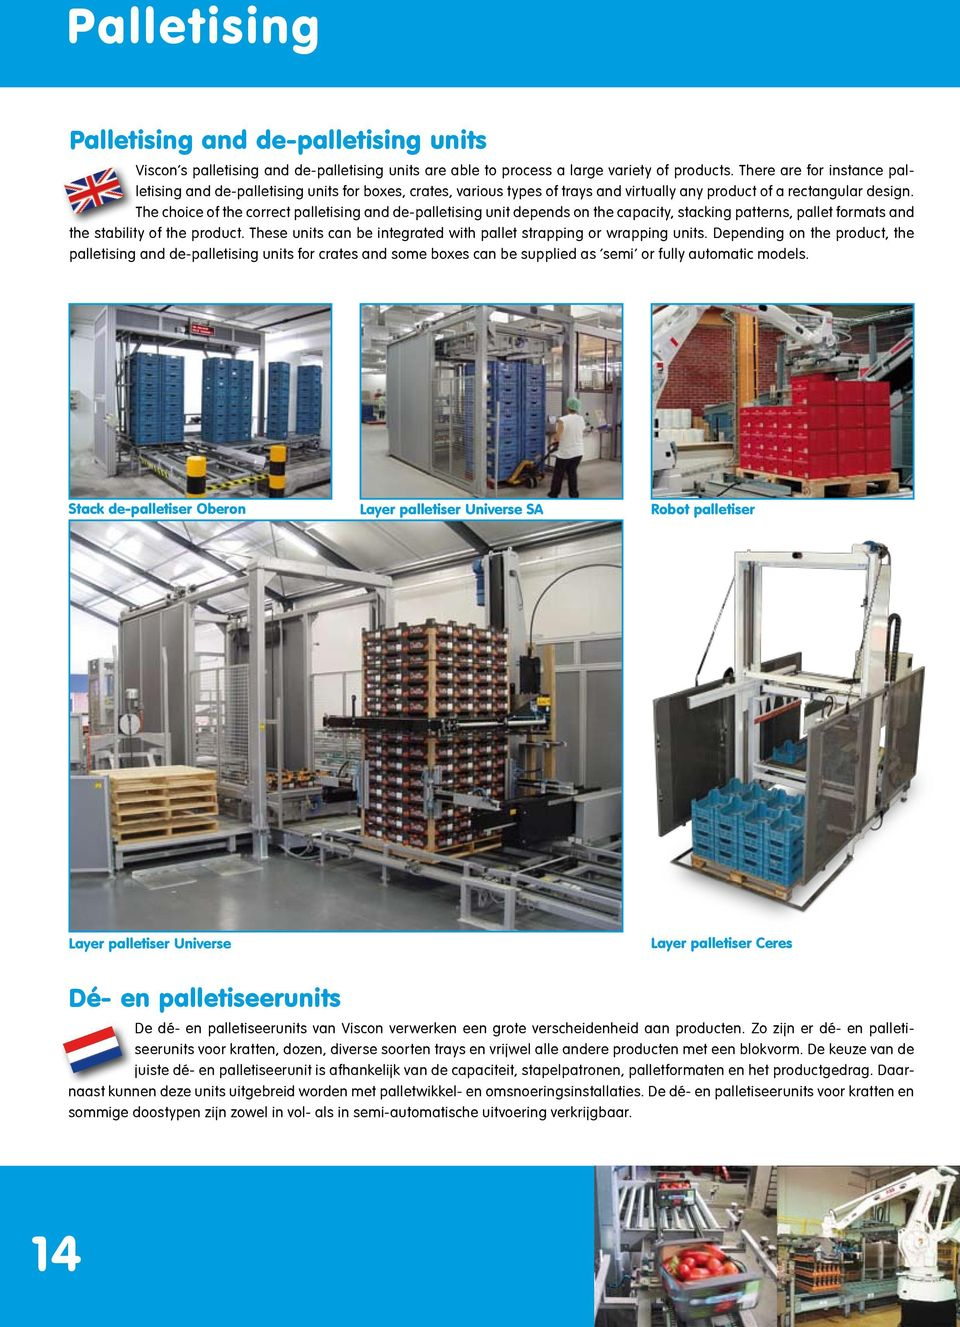 The choice of the correct palletising and de-palletising unit depends on the capacity, stacking patterns, pallet formats and the stability of the product.